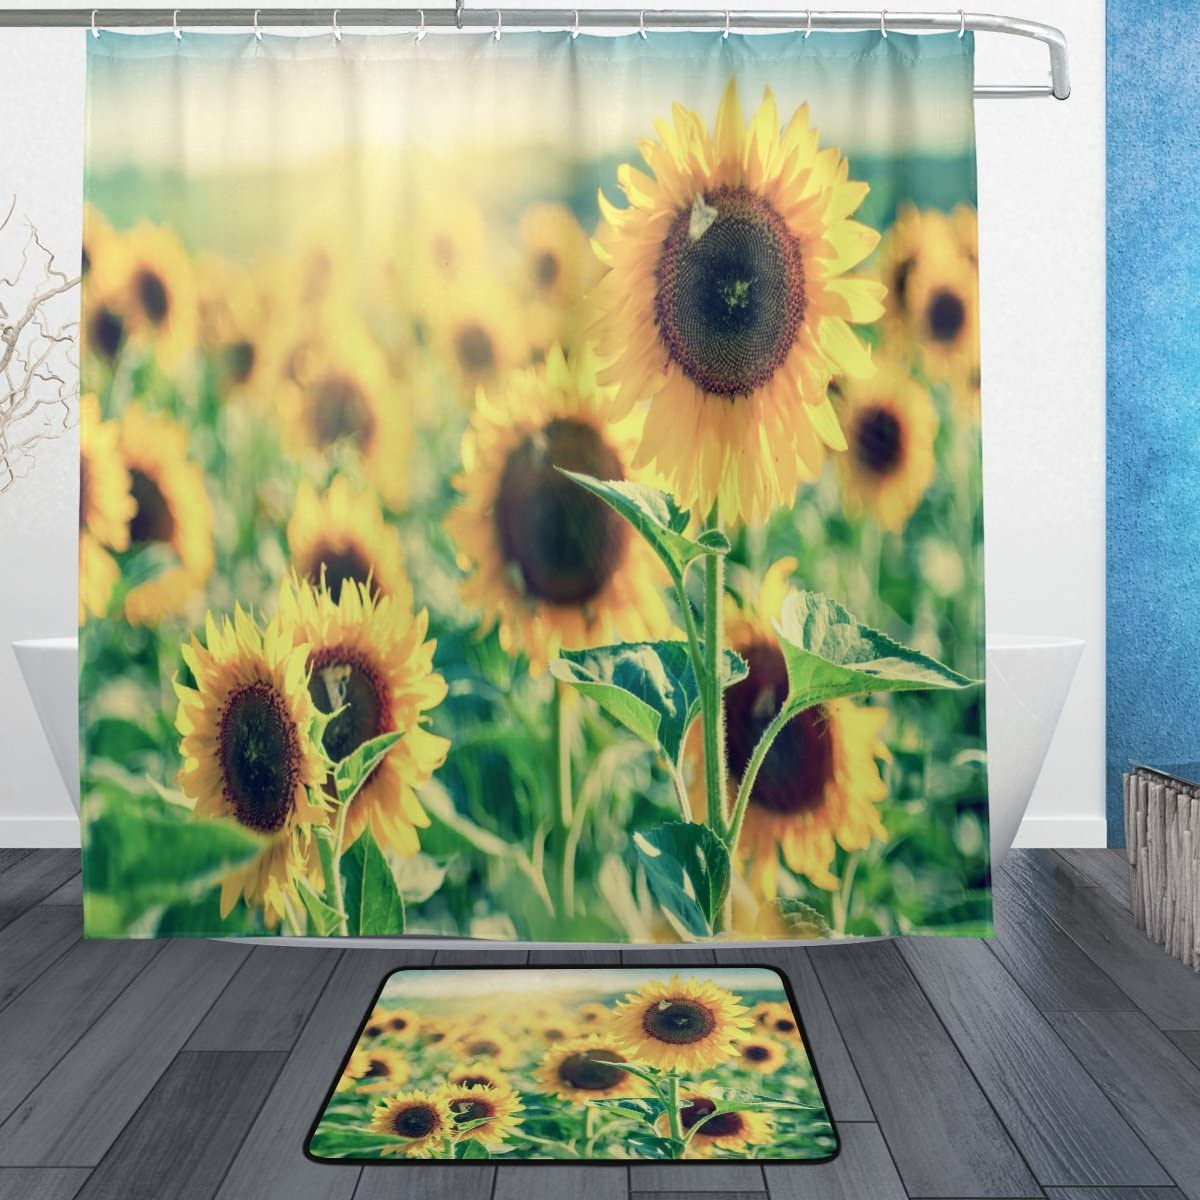 ALAZA Vintage Yellow Sunflower Field Waterproof Polyester Shower Curtain for Bathroom 72 x 72 Inches, Home Decor Decoration Curtain 12 Hooks with Doormat Set